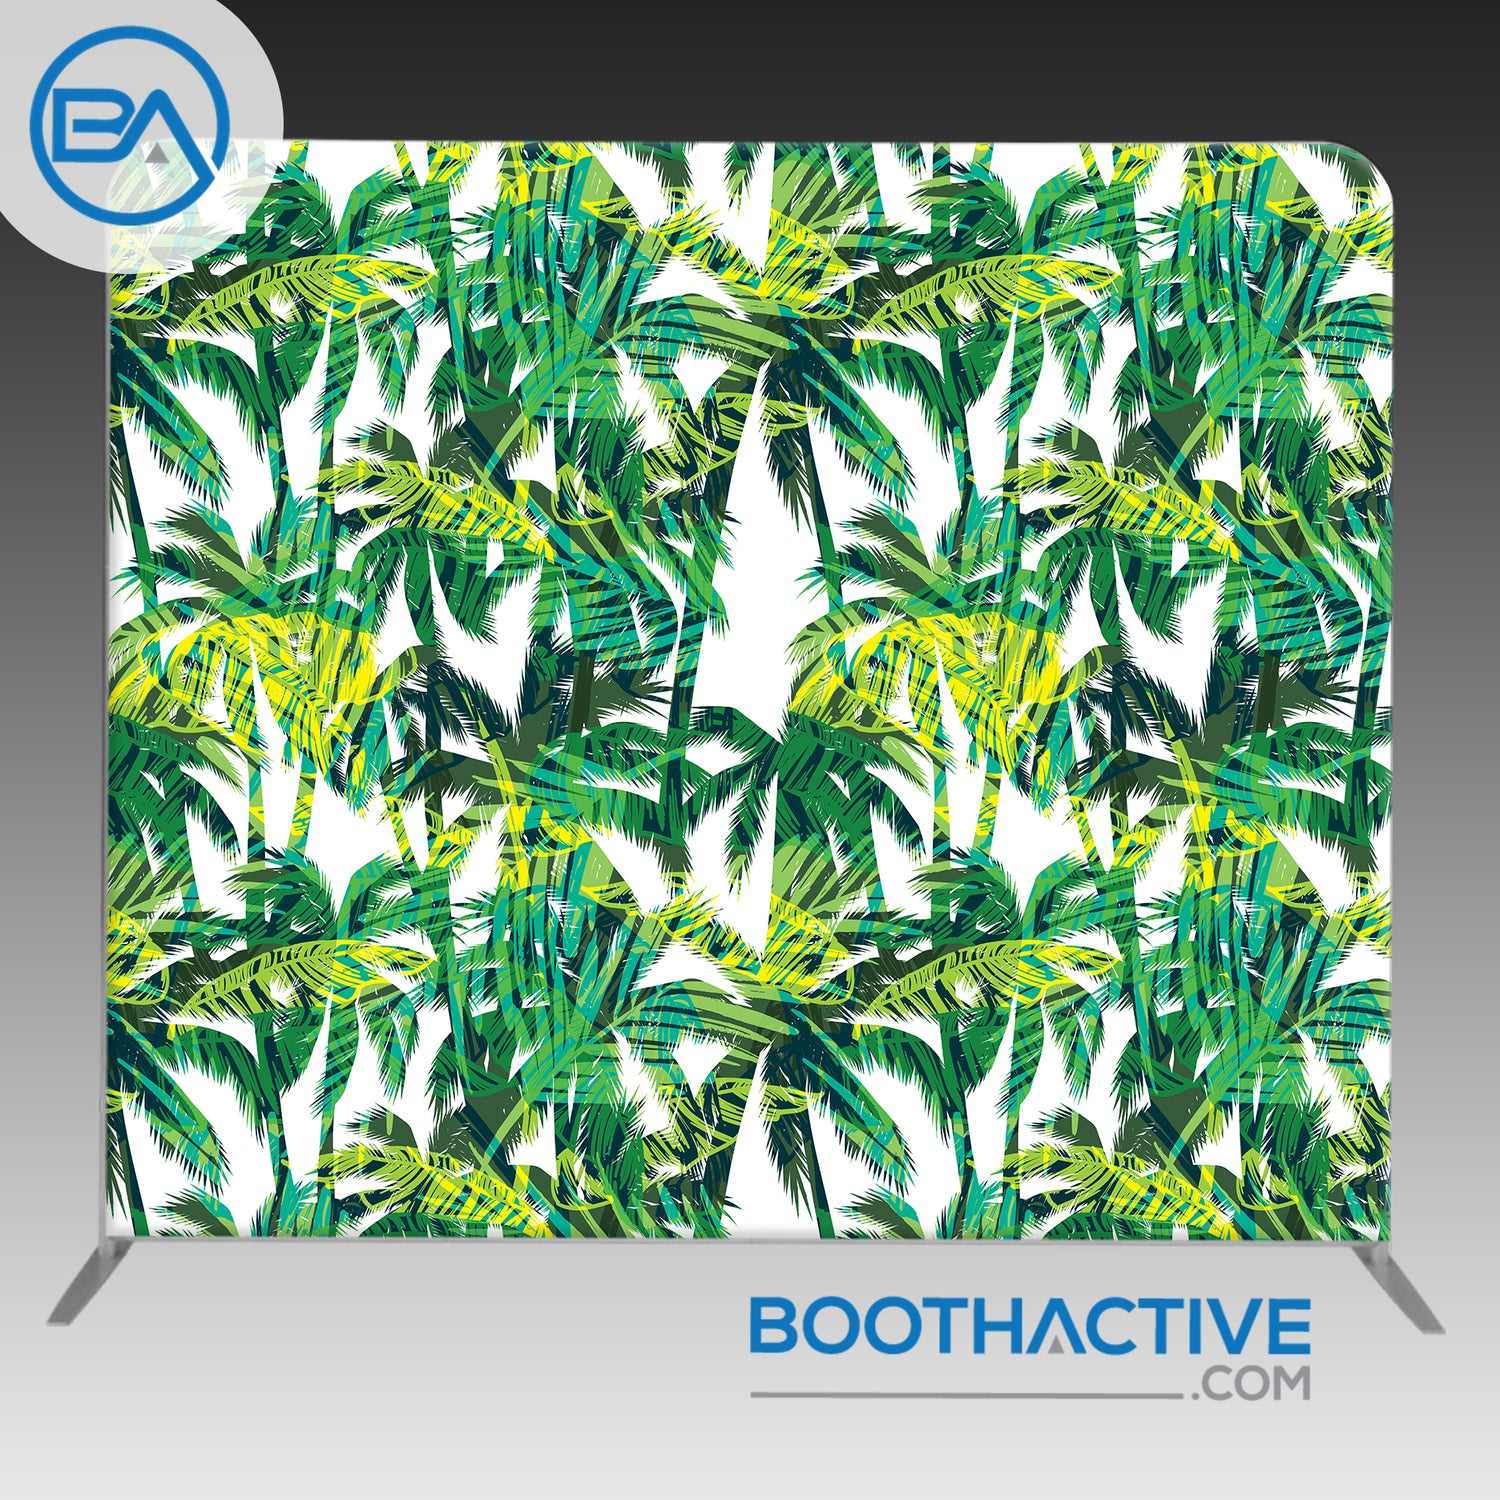 8' x 8' Backdrop - Summer - Palm Leaves